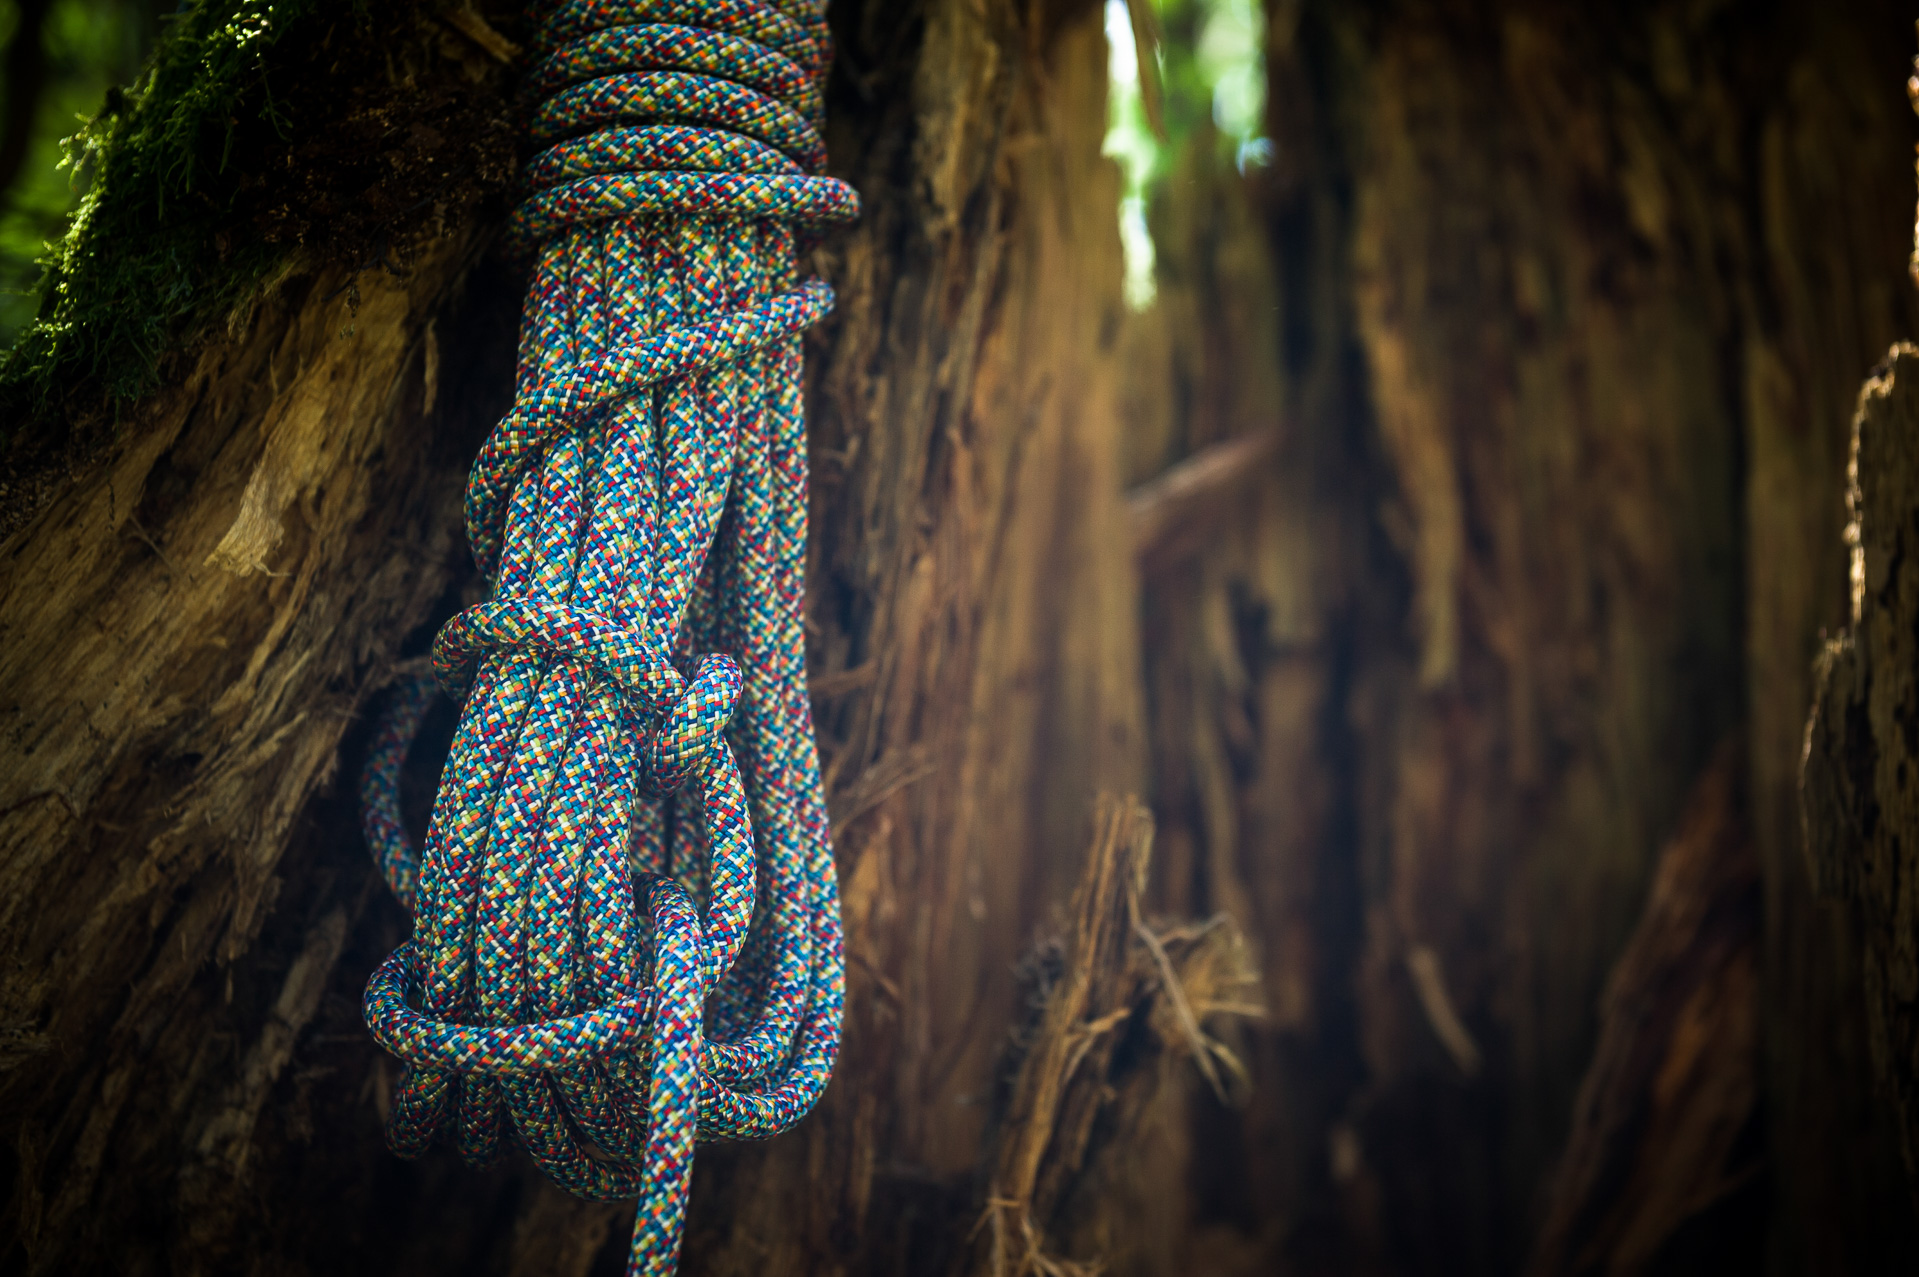 EDELRID Parrot Climbing Rope 9.8 mm